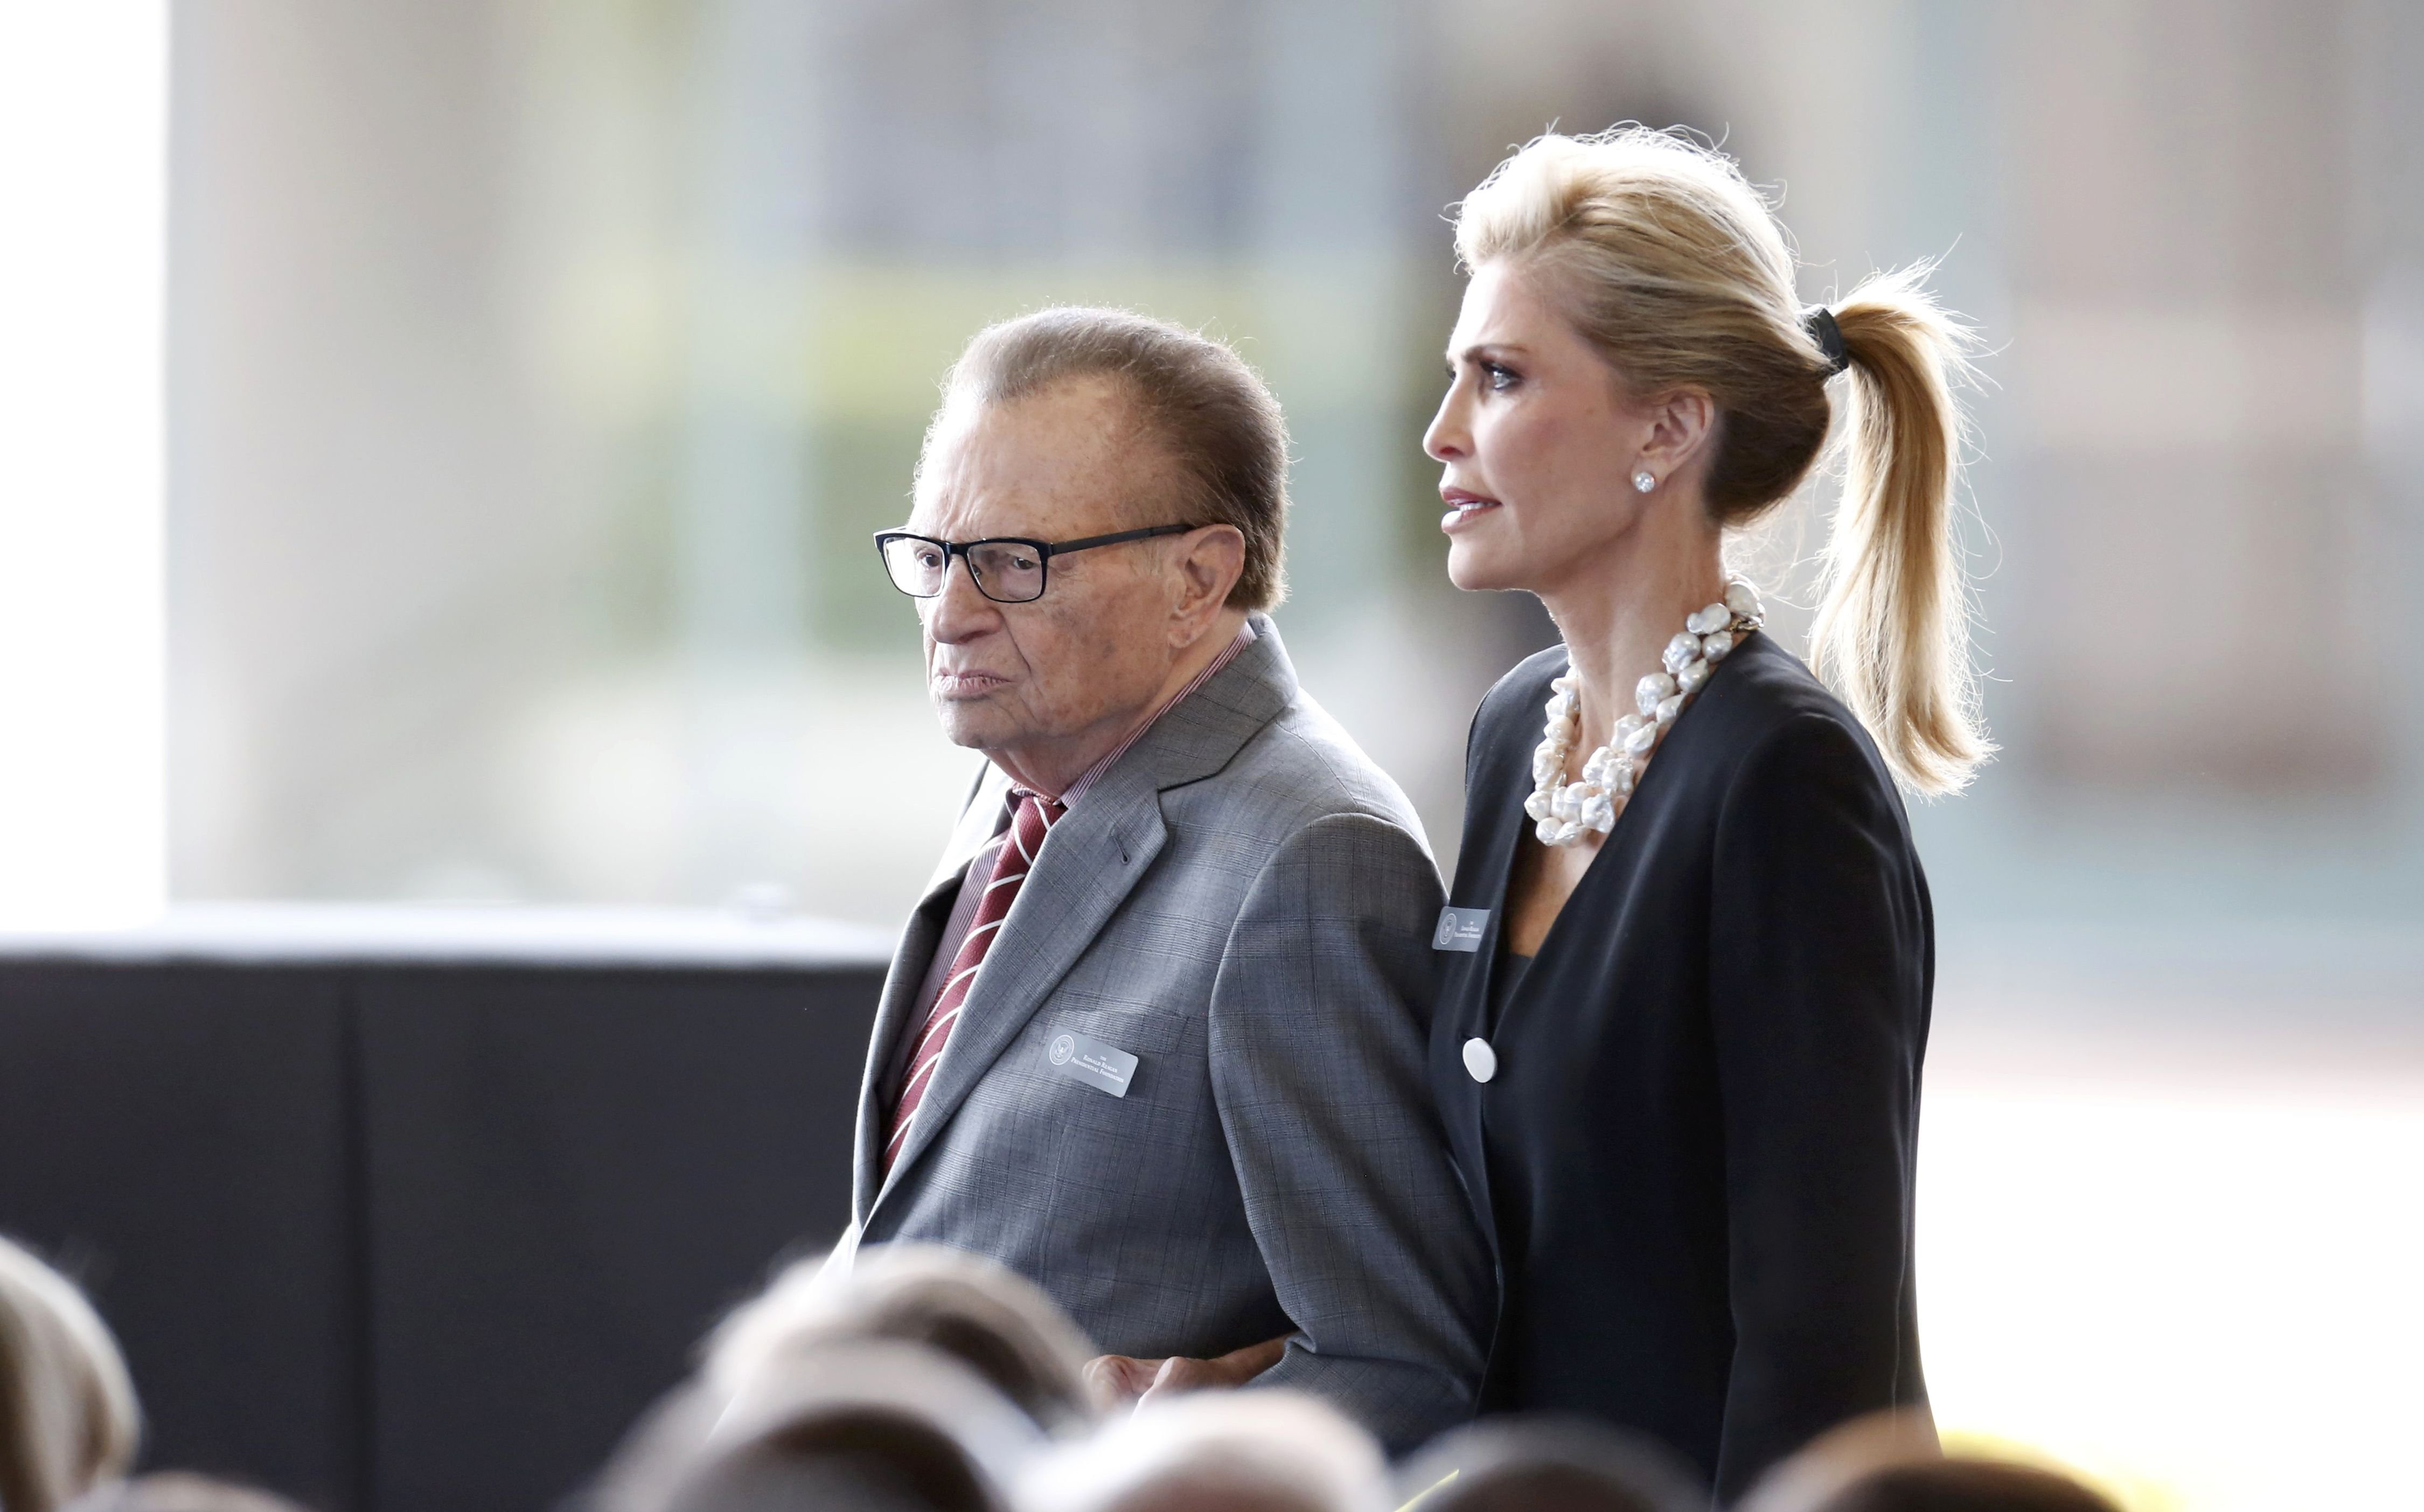 Television personality Larry King and his wife Shawn arrive for the funeral, March 11, 2016.